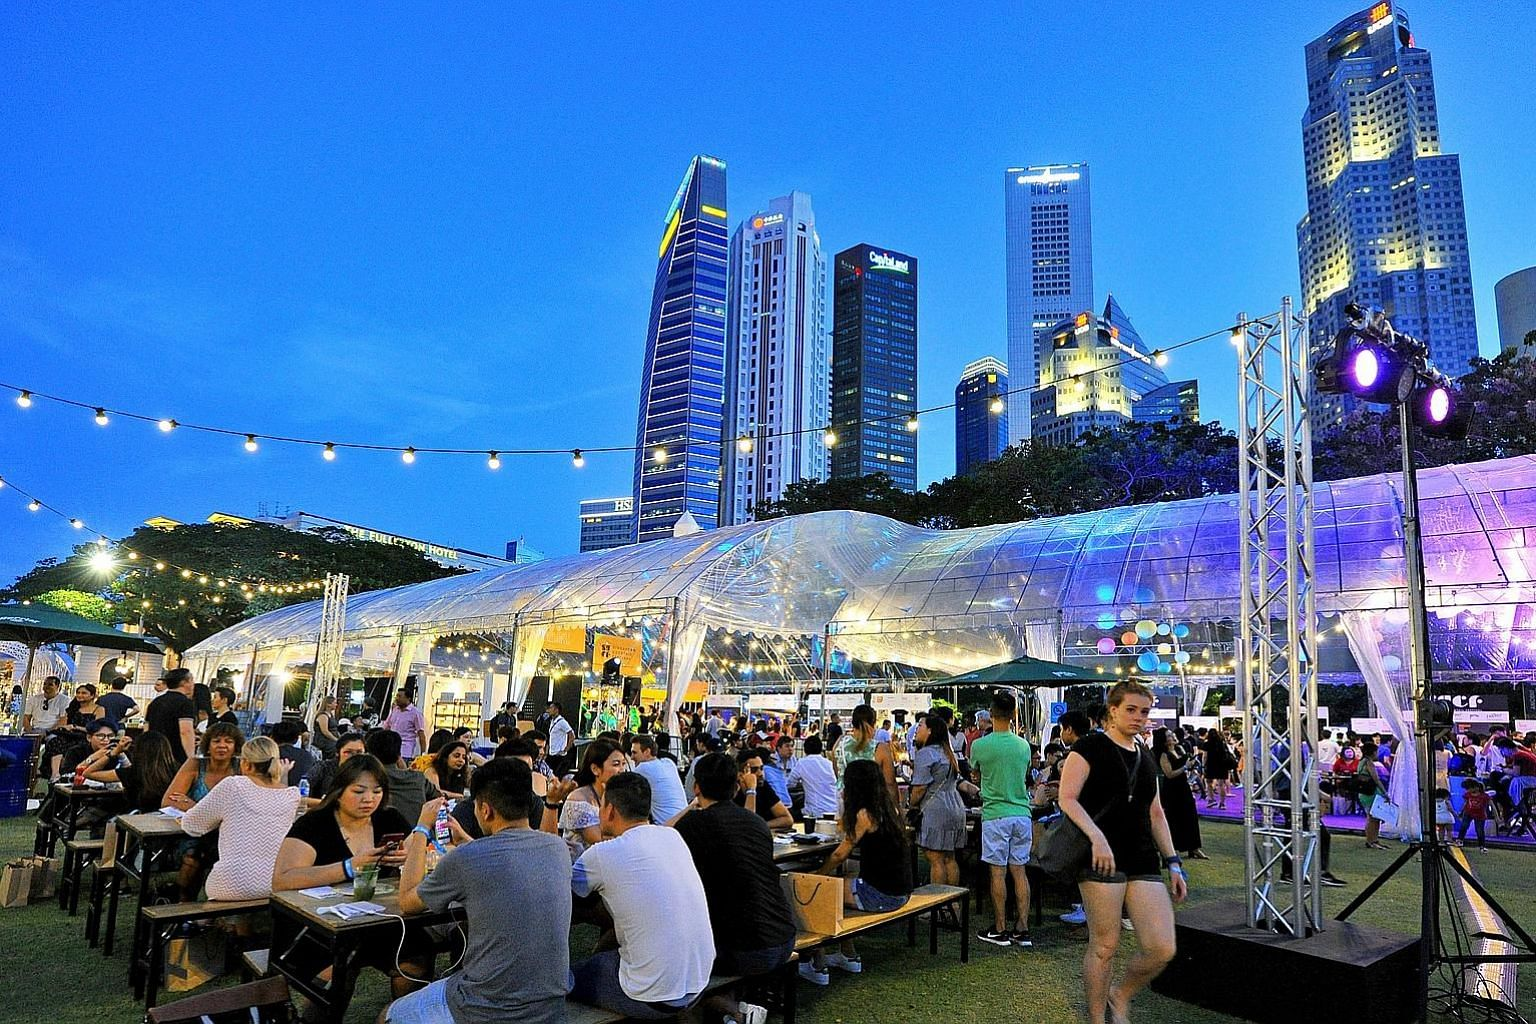 The fifth edition of the Singapore Cocktail Festival will take place from May 10 to 18, with activities centred on a festival village that runs from May 10 to 12 at Empress Place.